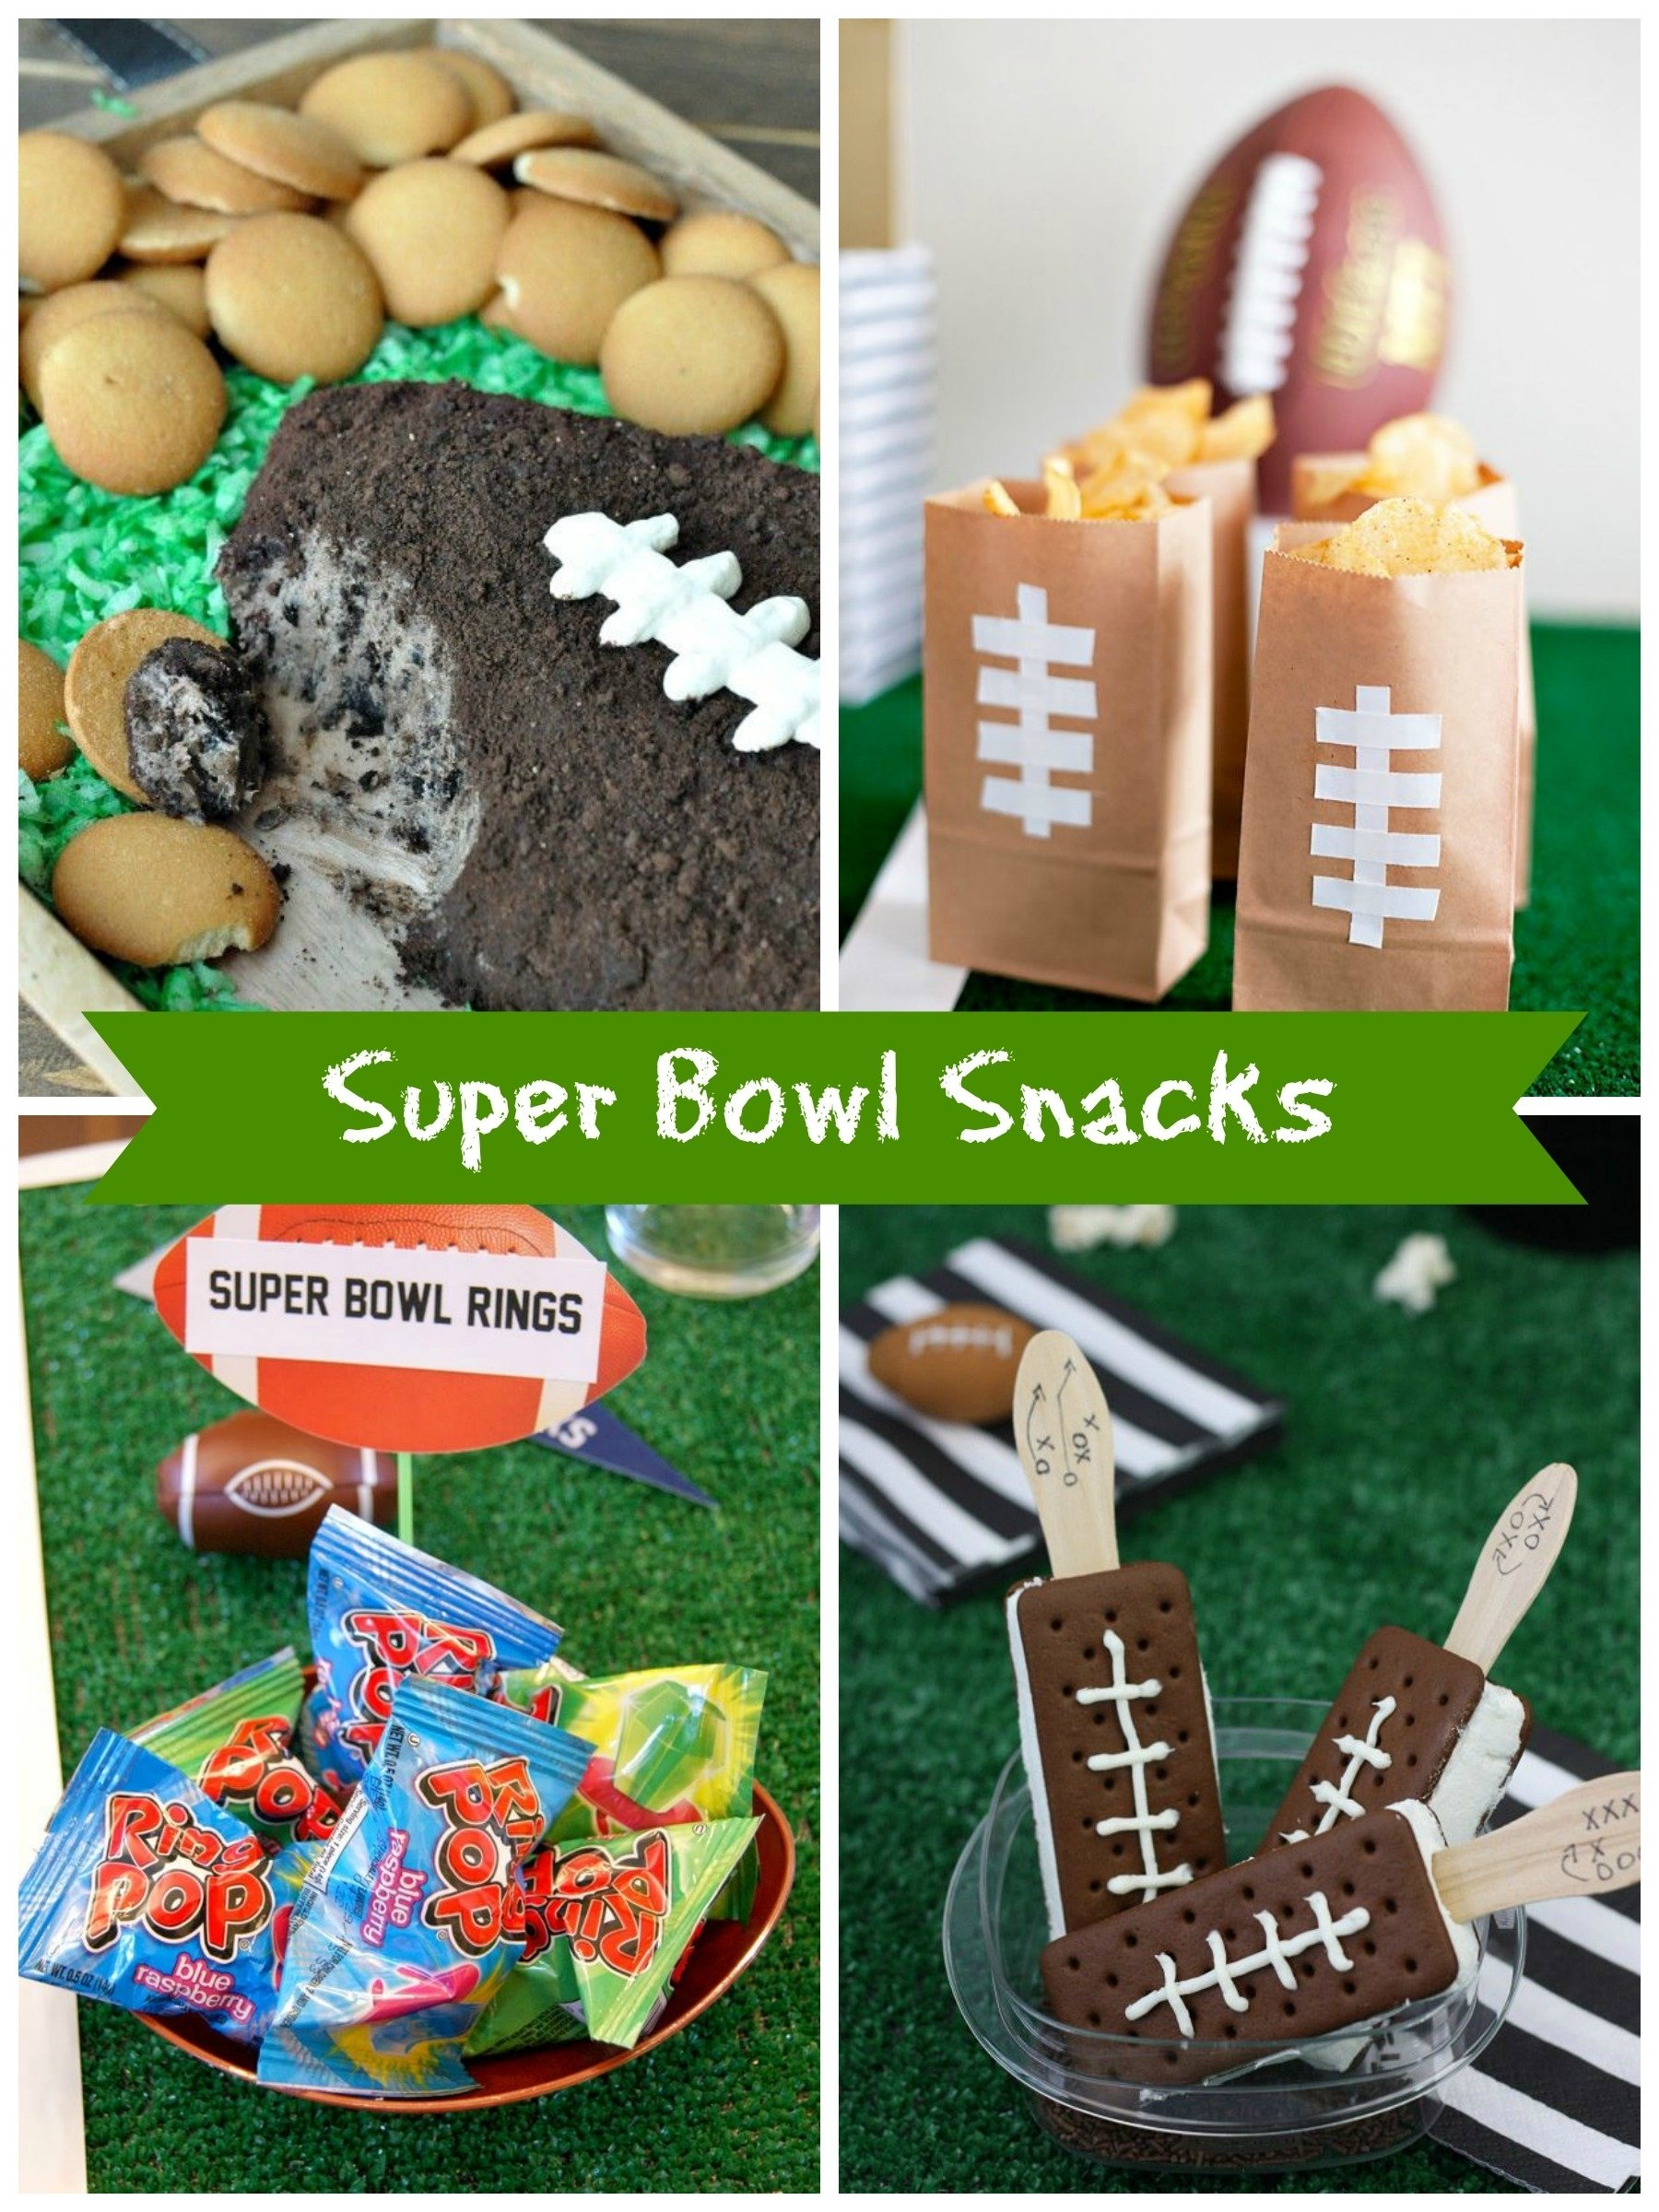 10 Stylish Football Party Ideas For Kids easy diy super bowl party ideas creative juice 1 2021